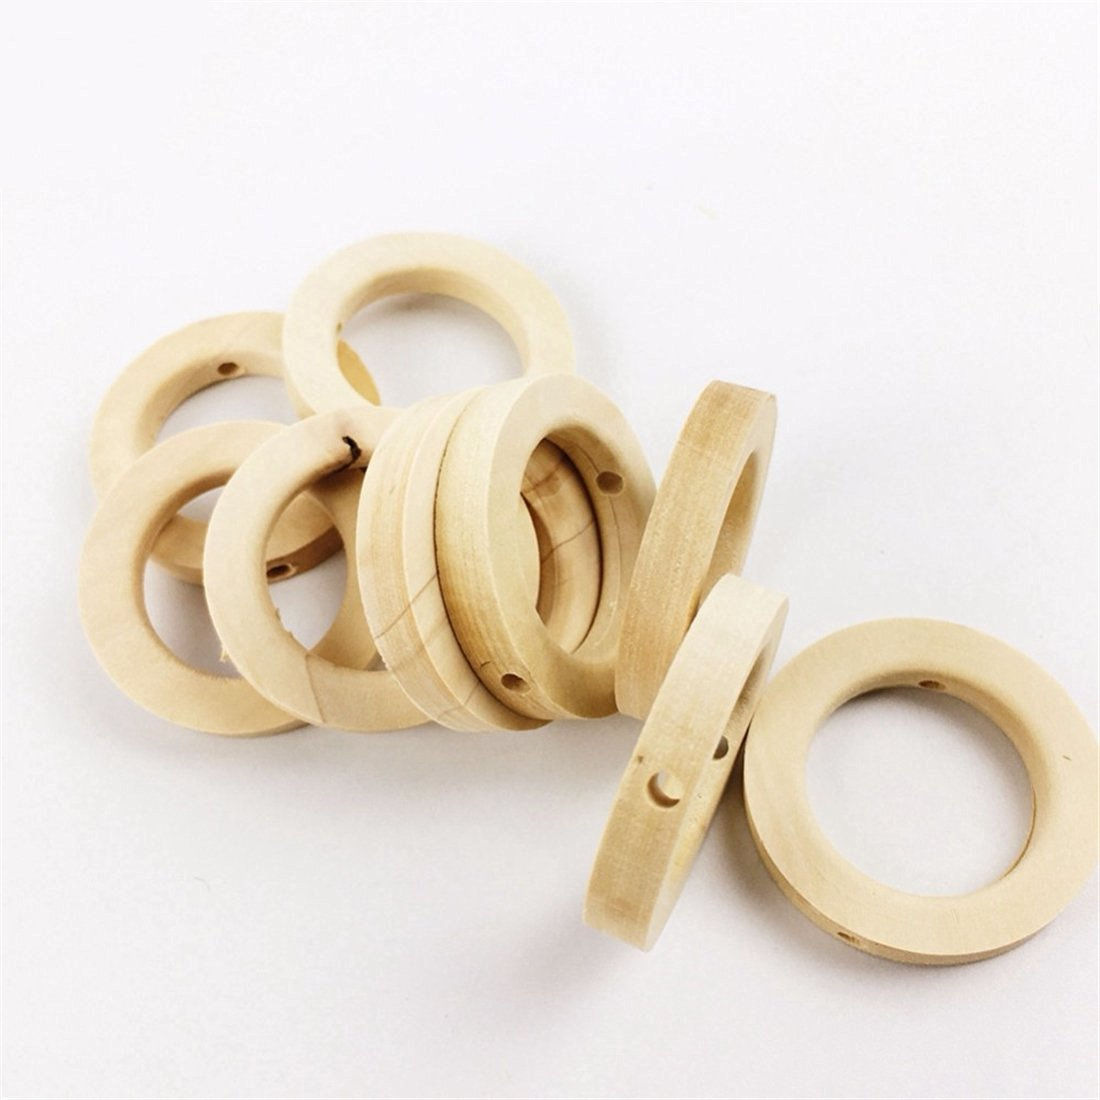 25pc Wooden Teether Baby Crib Toys Diy Crafts for Baby Nursing Necklace Baby Teether Wooden Rings Small Wood Beads